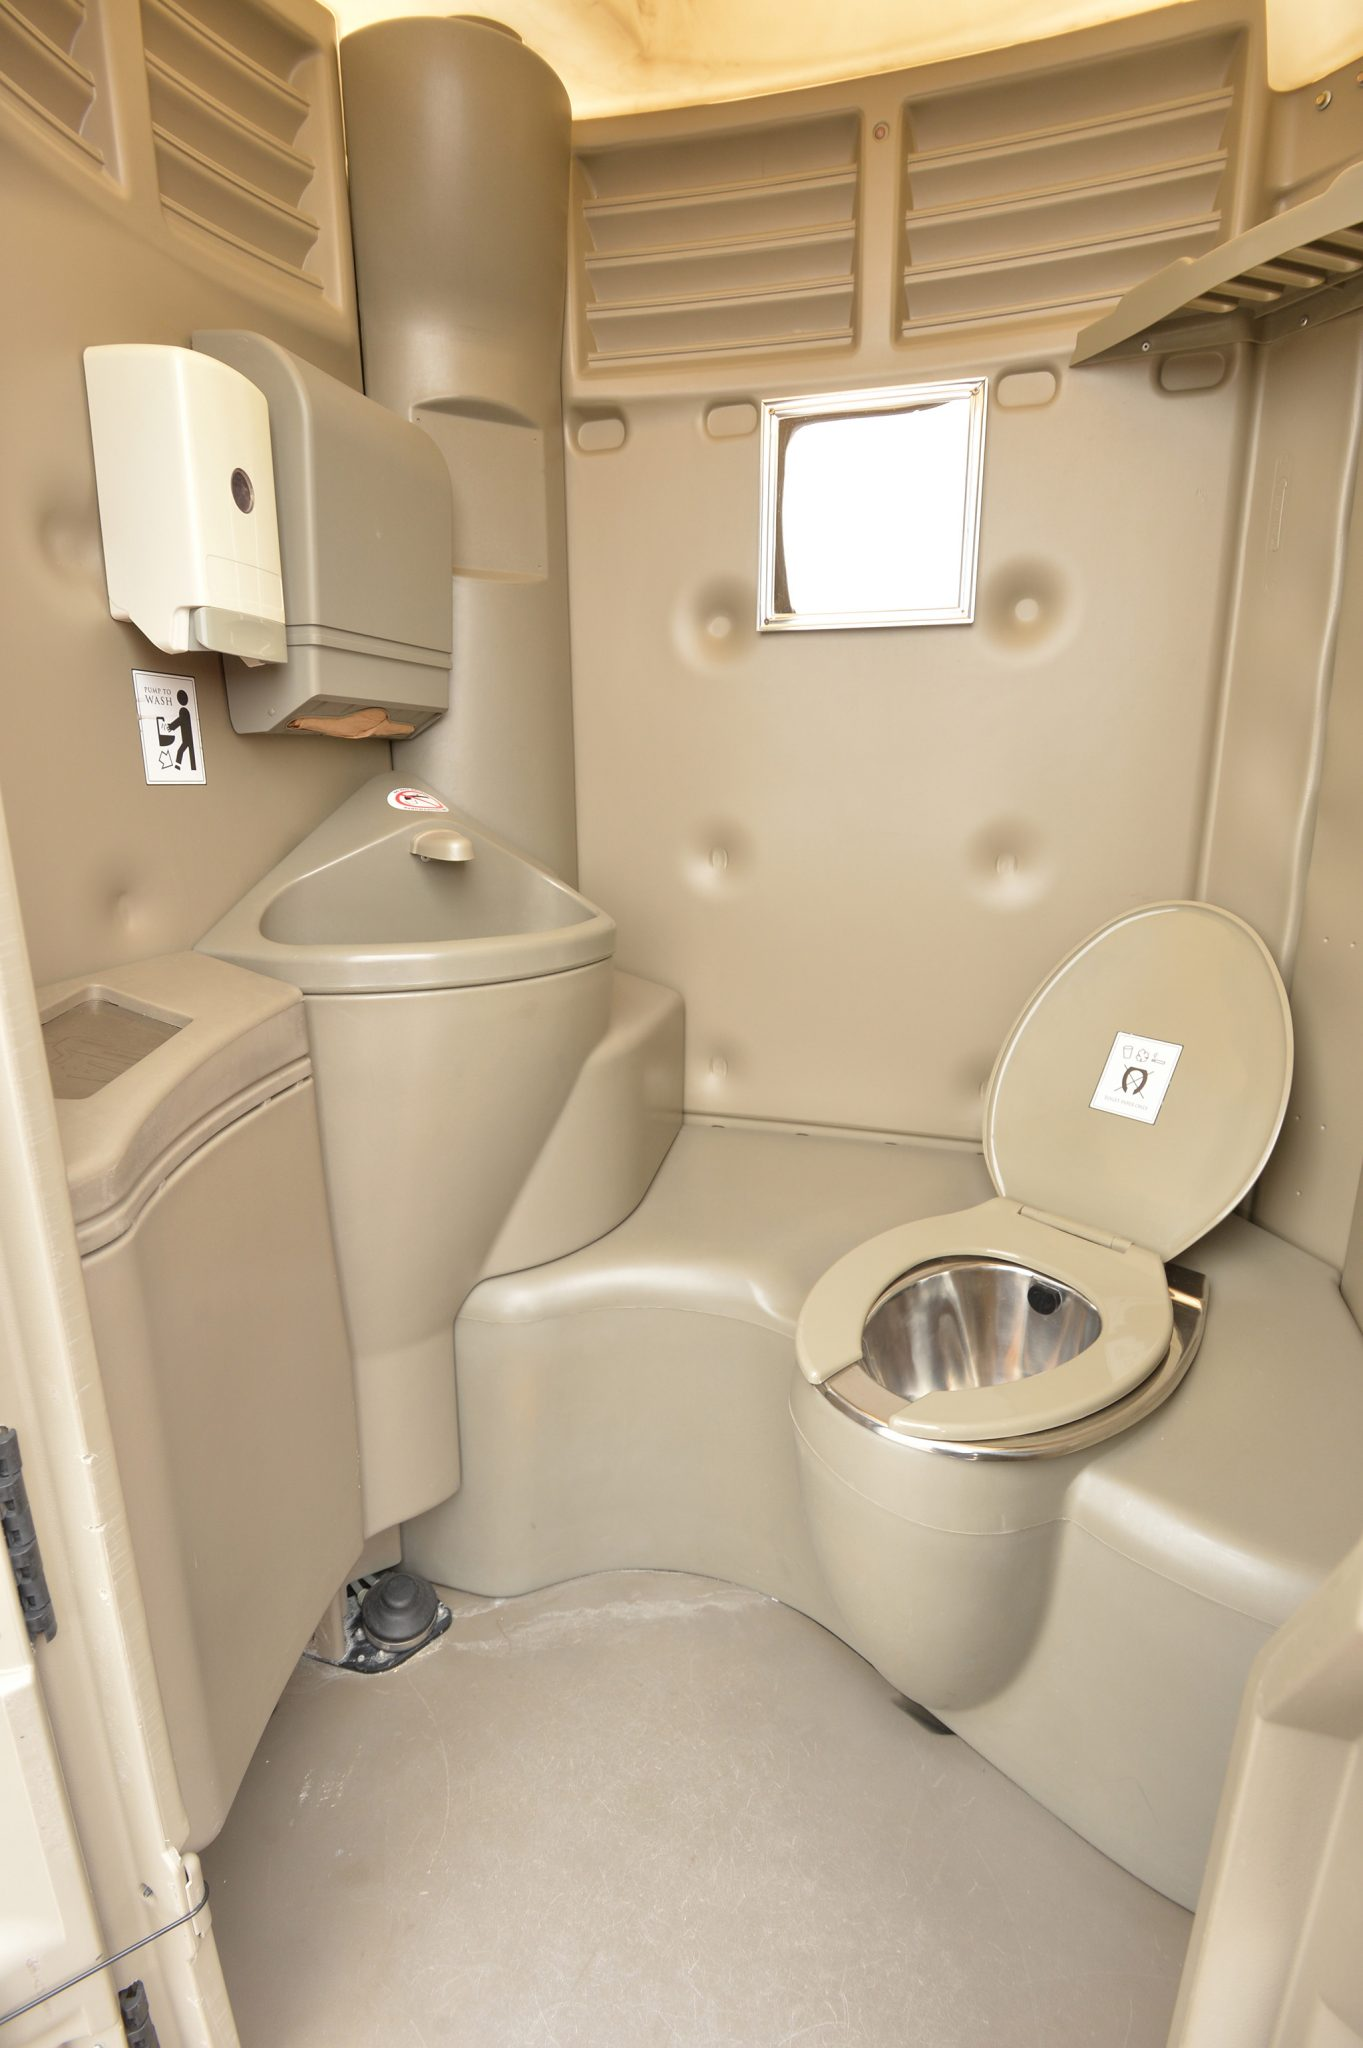 Luxury toilets in el paso a different porta potty for Porta johns for rent